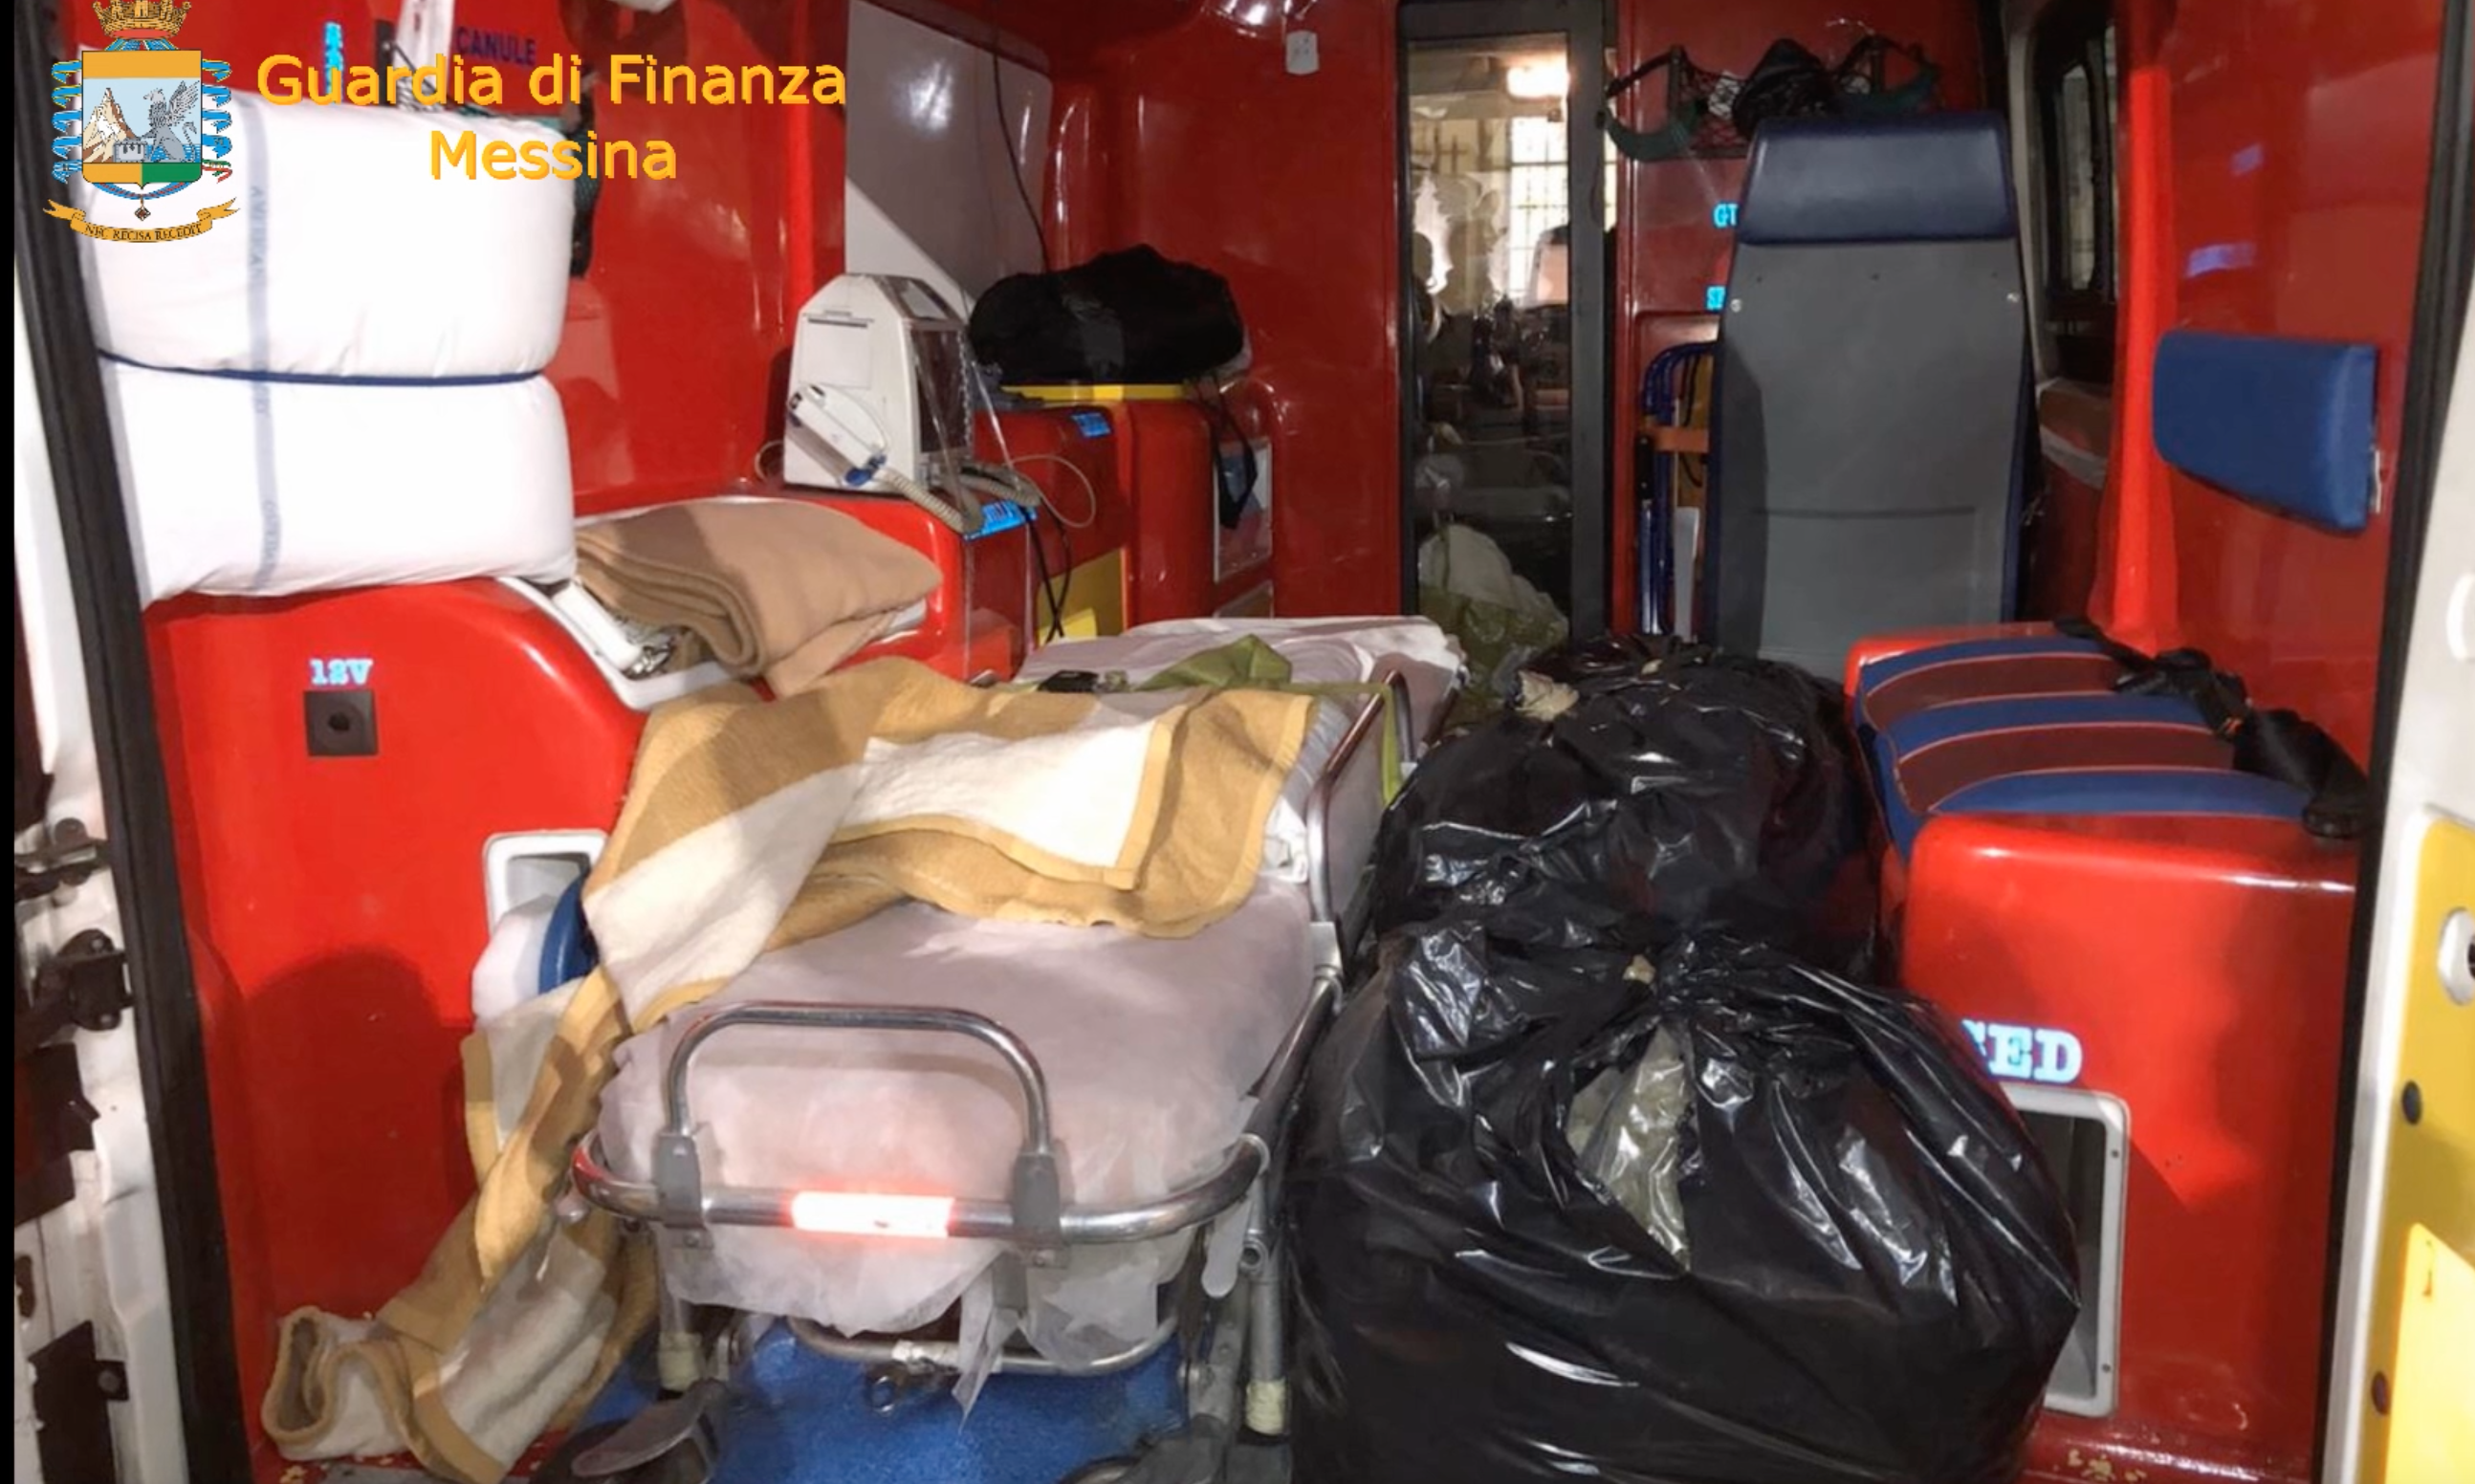 La droga viaggiava in ambulanza, arrestato agli imbarcaderi di Messina